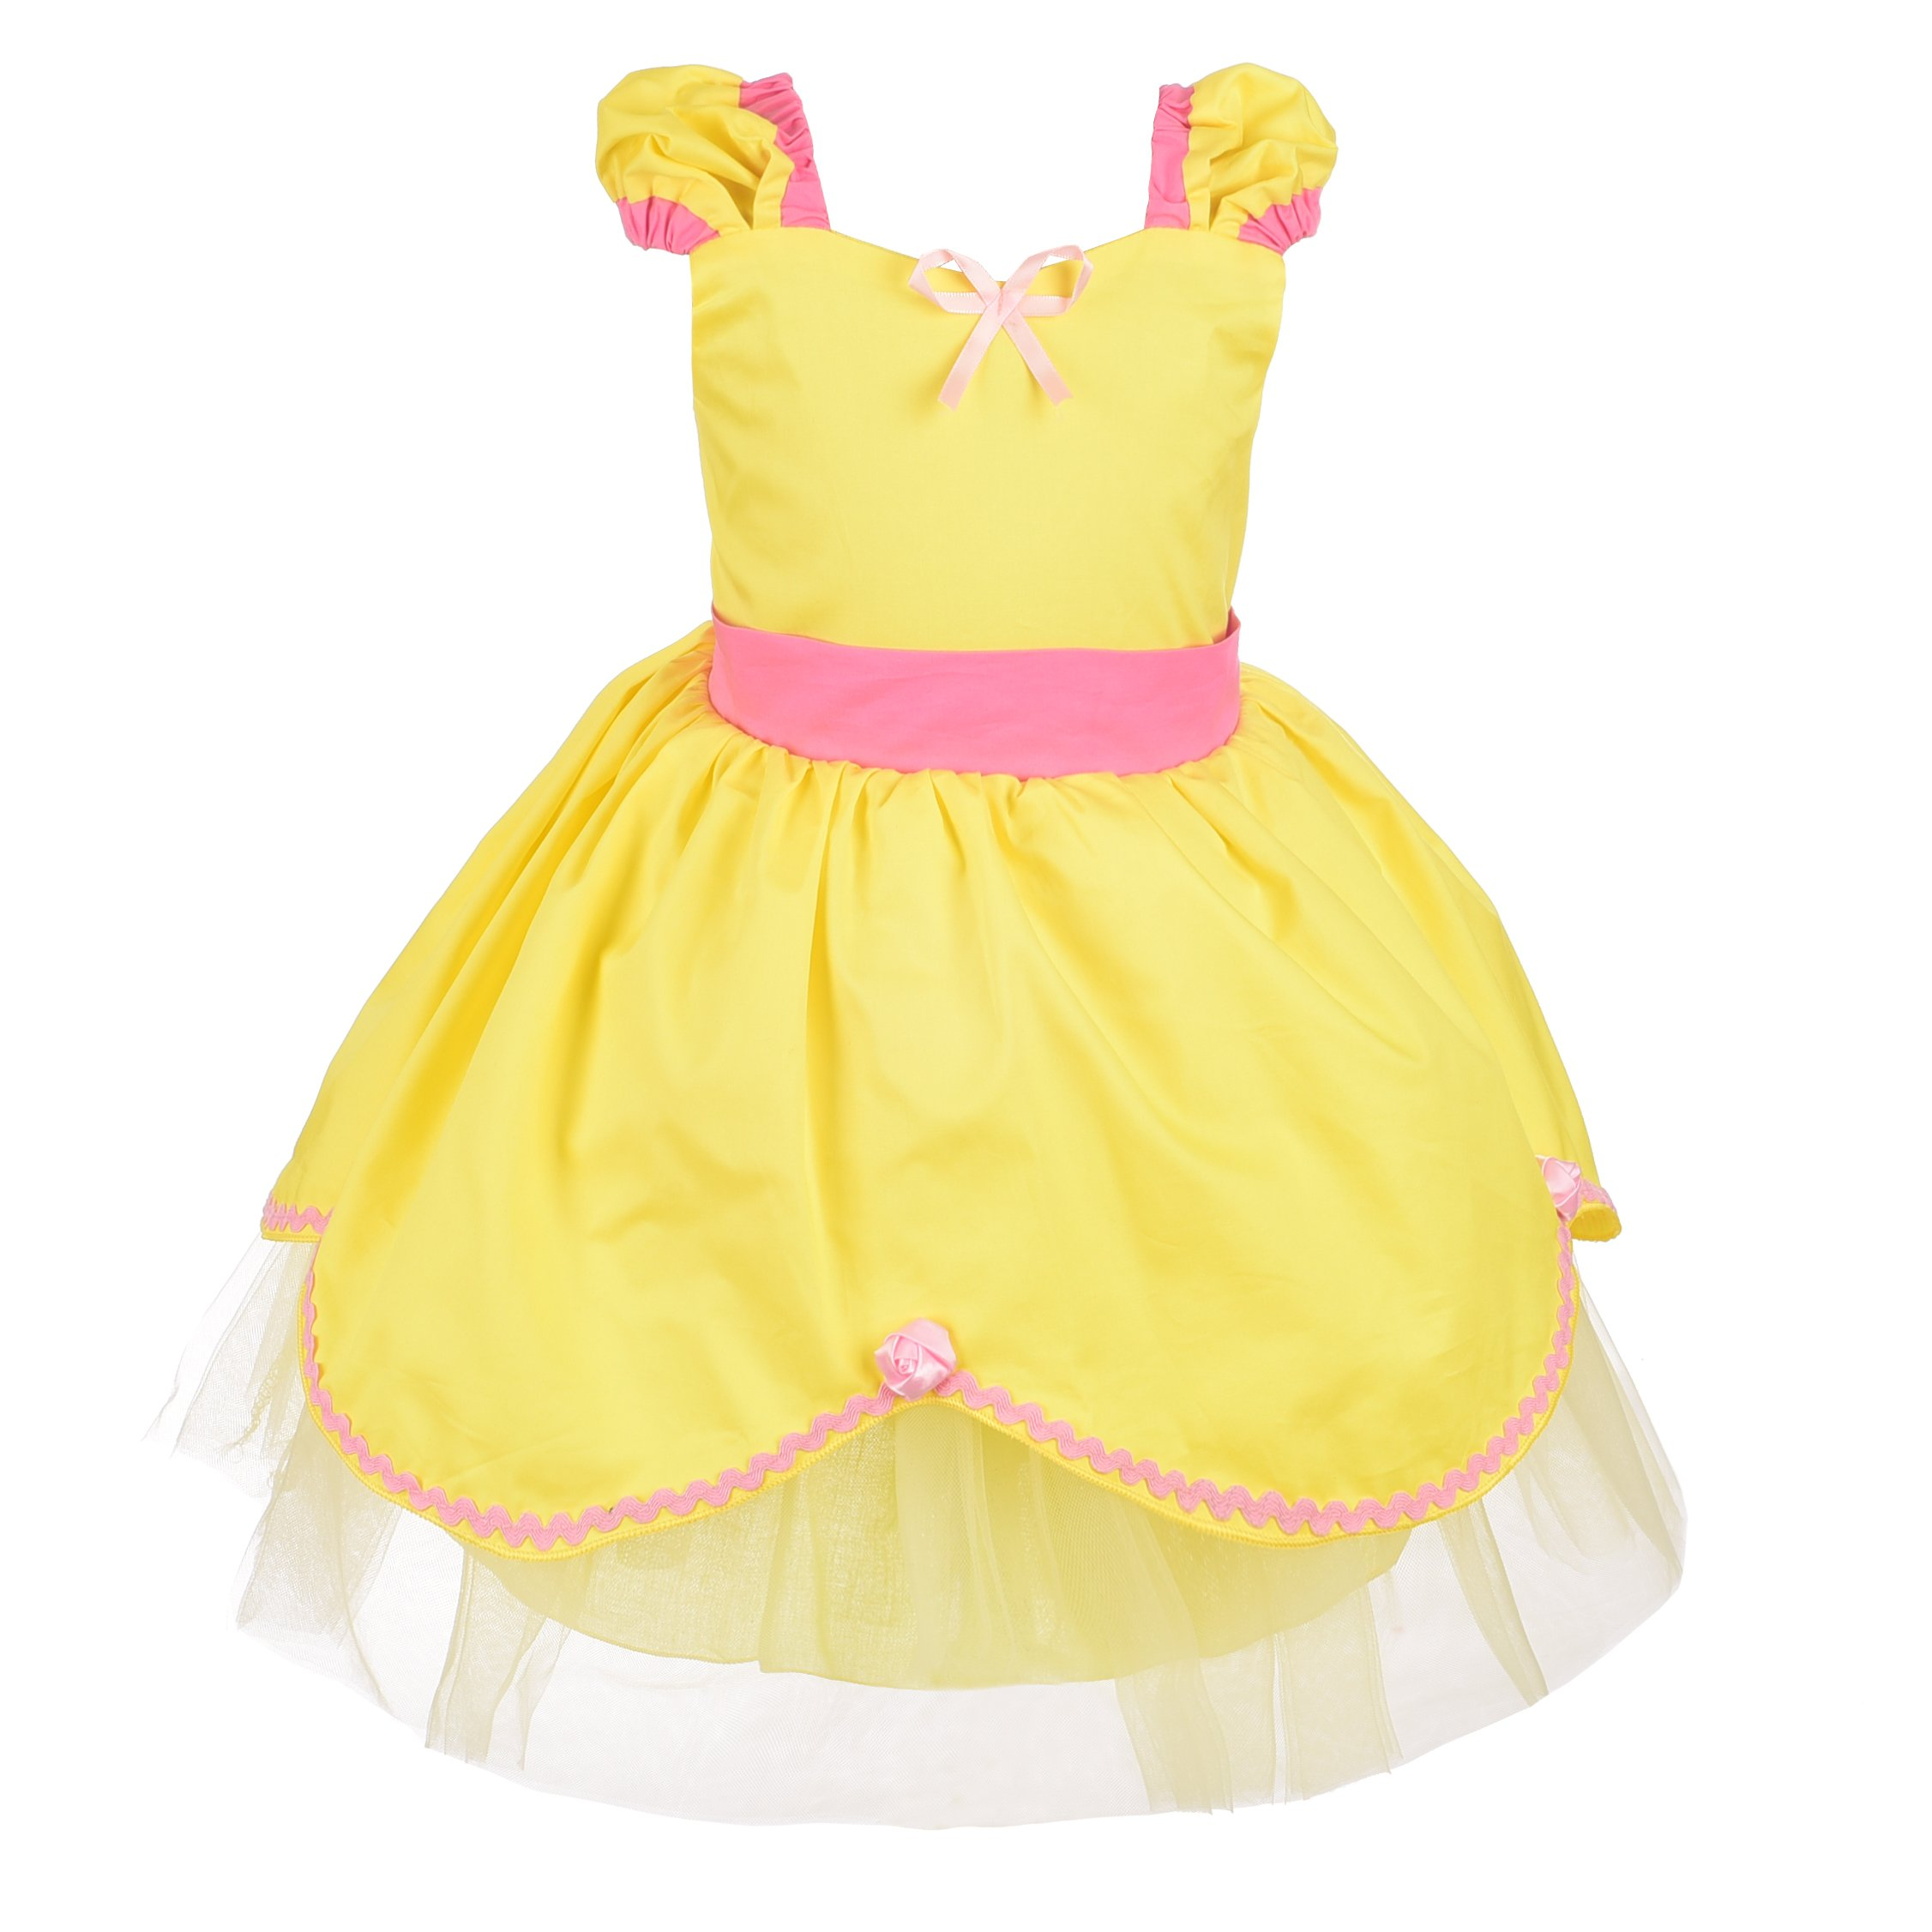 79df150913d Dressy Daisy Girls Princess Belle Dress Costume Summer Dress up Size 2T   3T